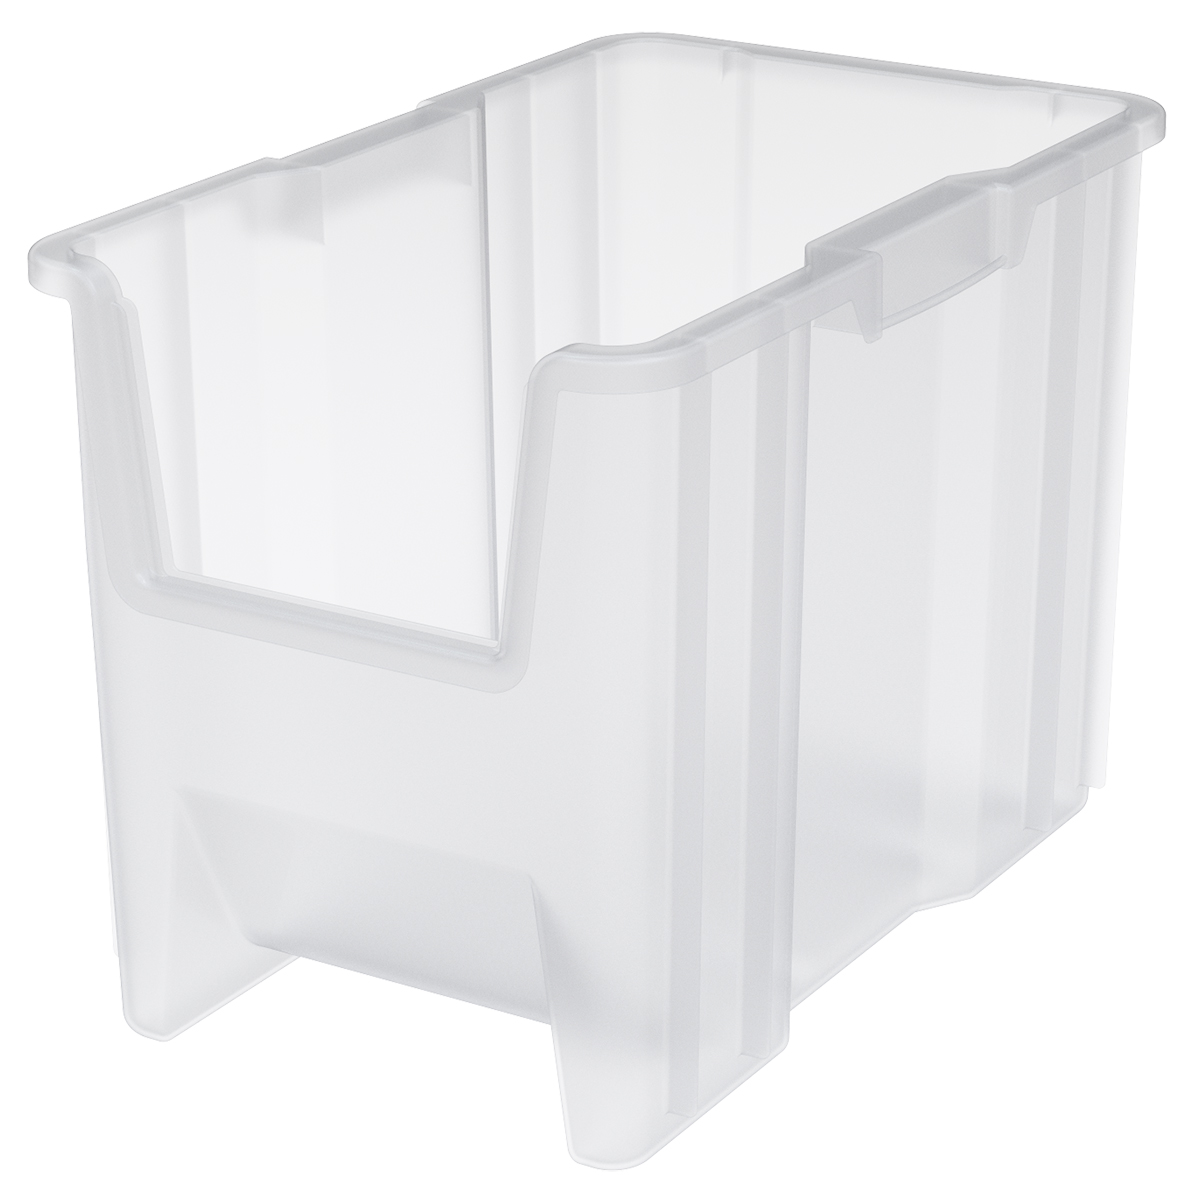 Stak-N-Store Bin 17-1/2 x 10-7/8 x 12-1/2, Clear (13014SCLAR).  This item sold in carton quantities of 4.